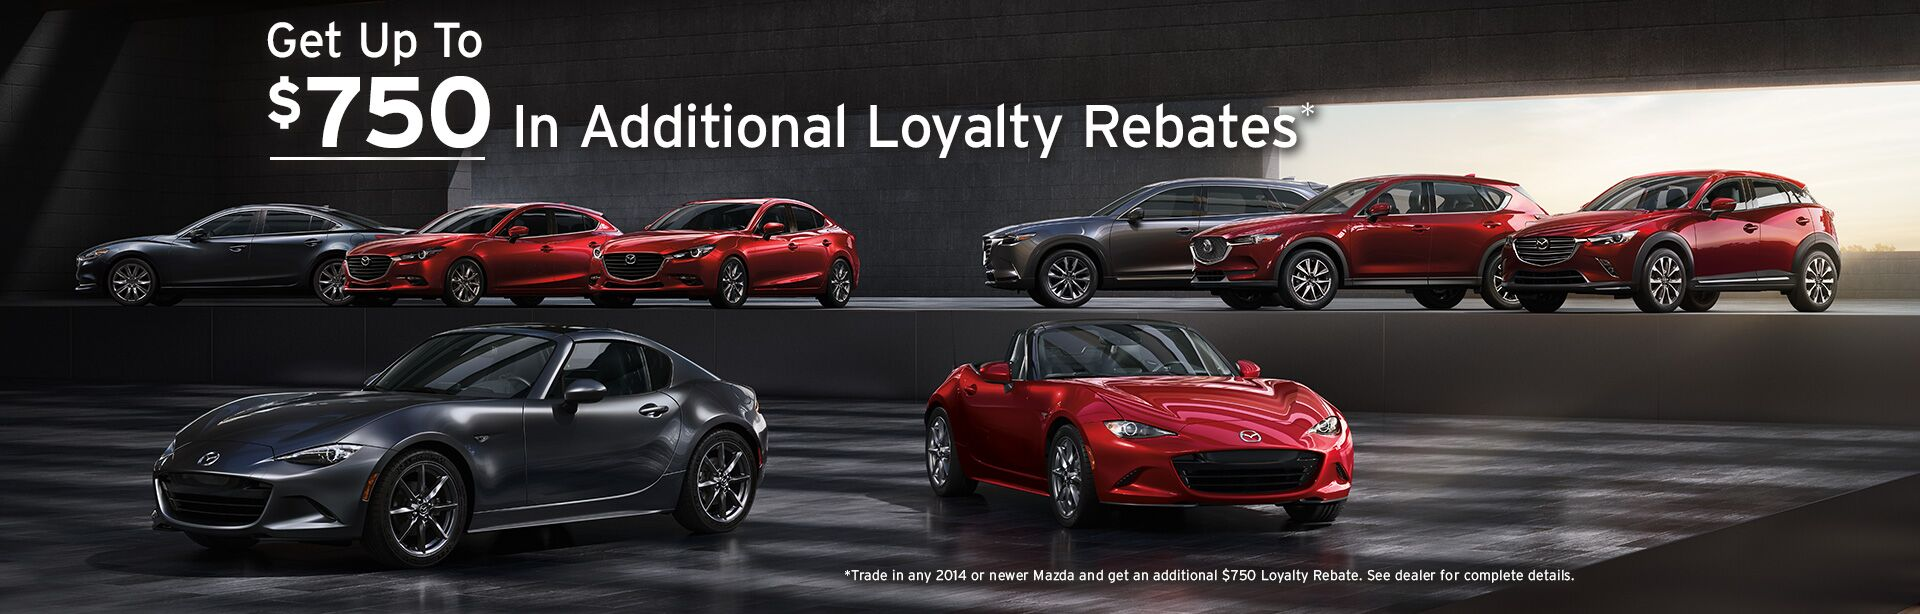 Loyalty Rebates